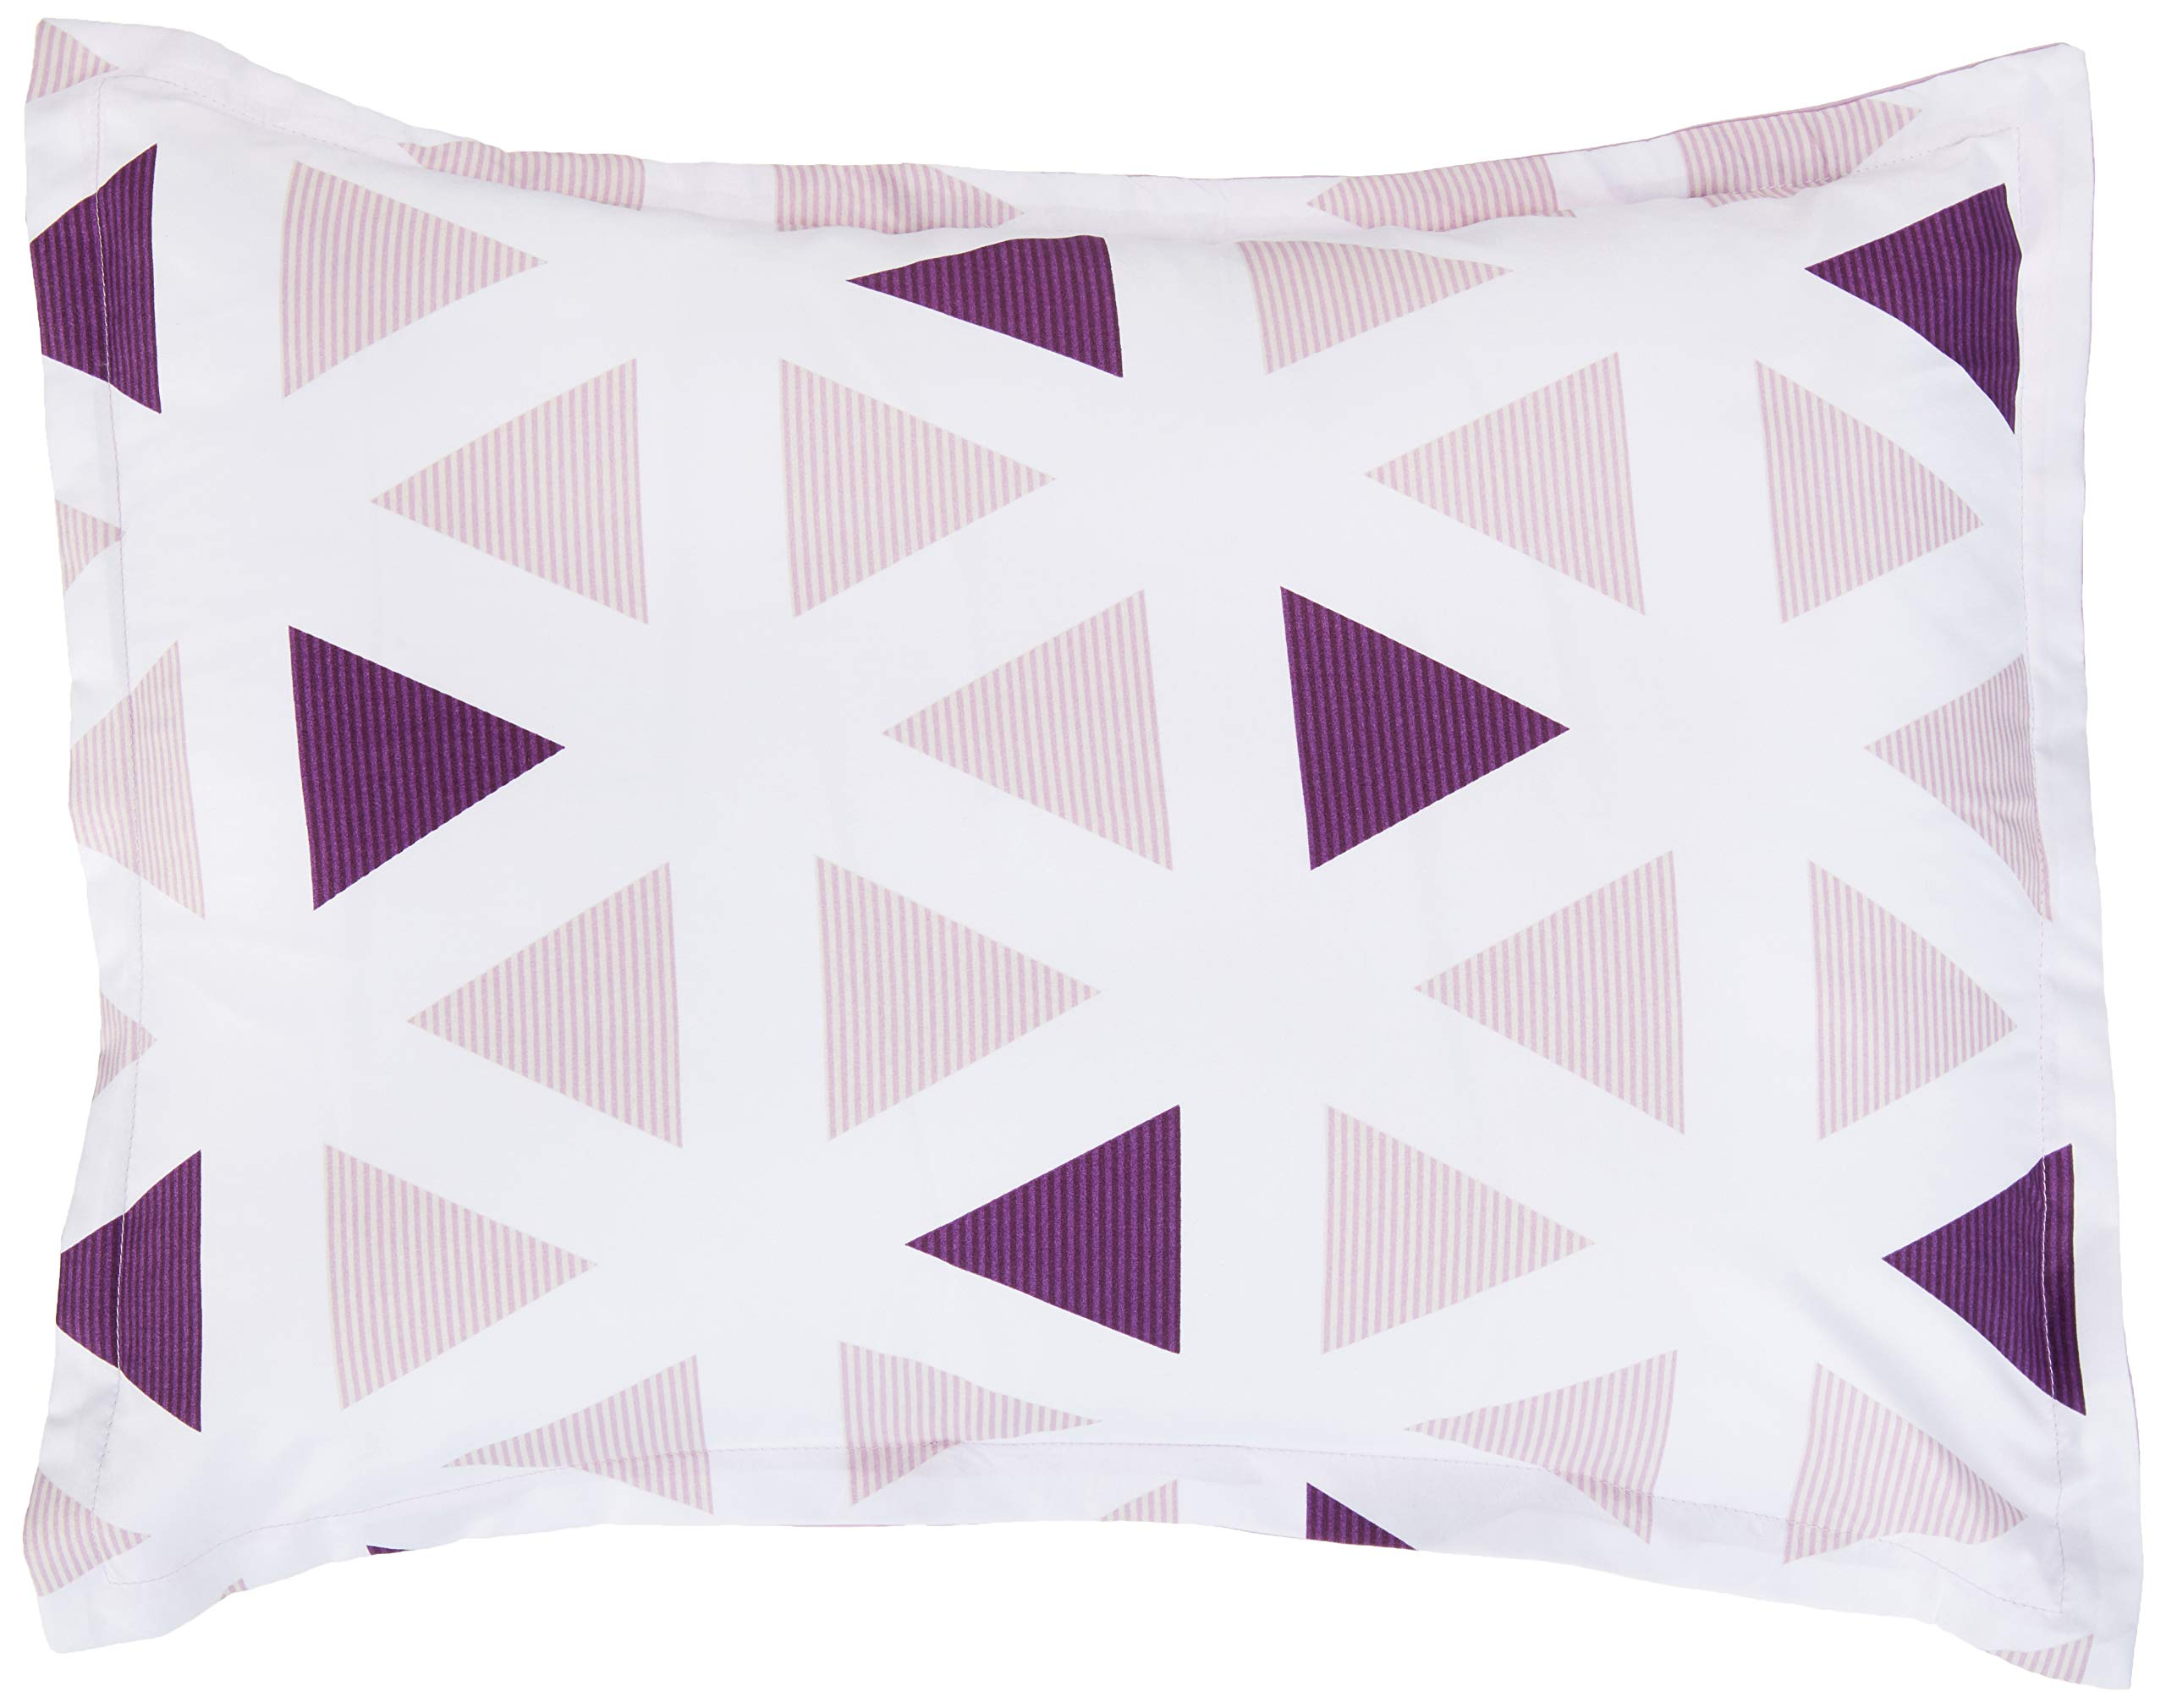 CDM product AmazonBasics Easy-Wash Microfiber Kid's Bed-in-a-Bag Bedding Set - Twin, Purple Triangles small thumbnail image